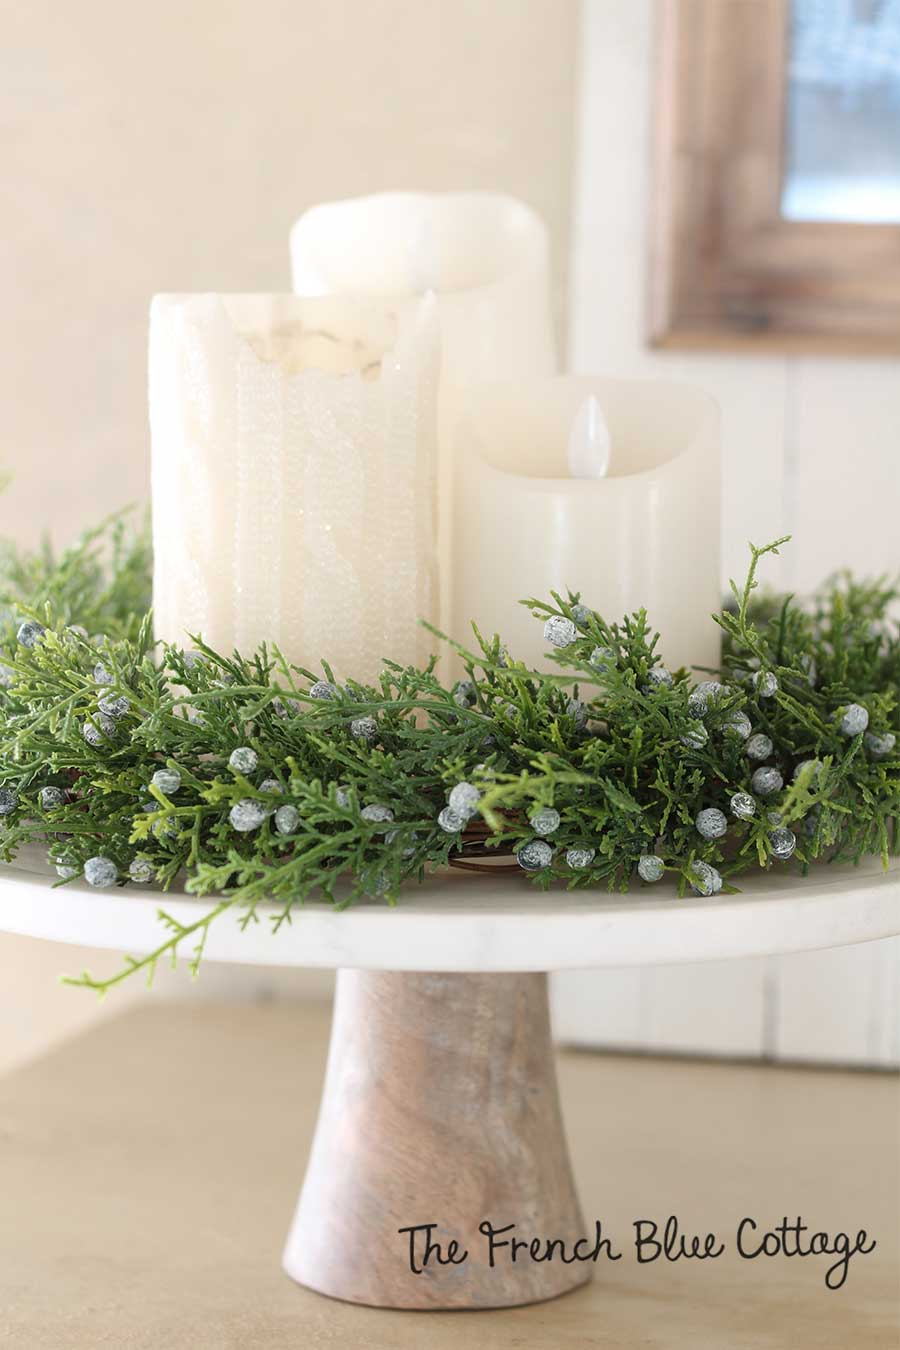 Candles on a cake stand with winter wreath.